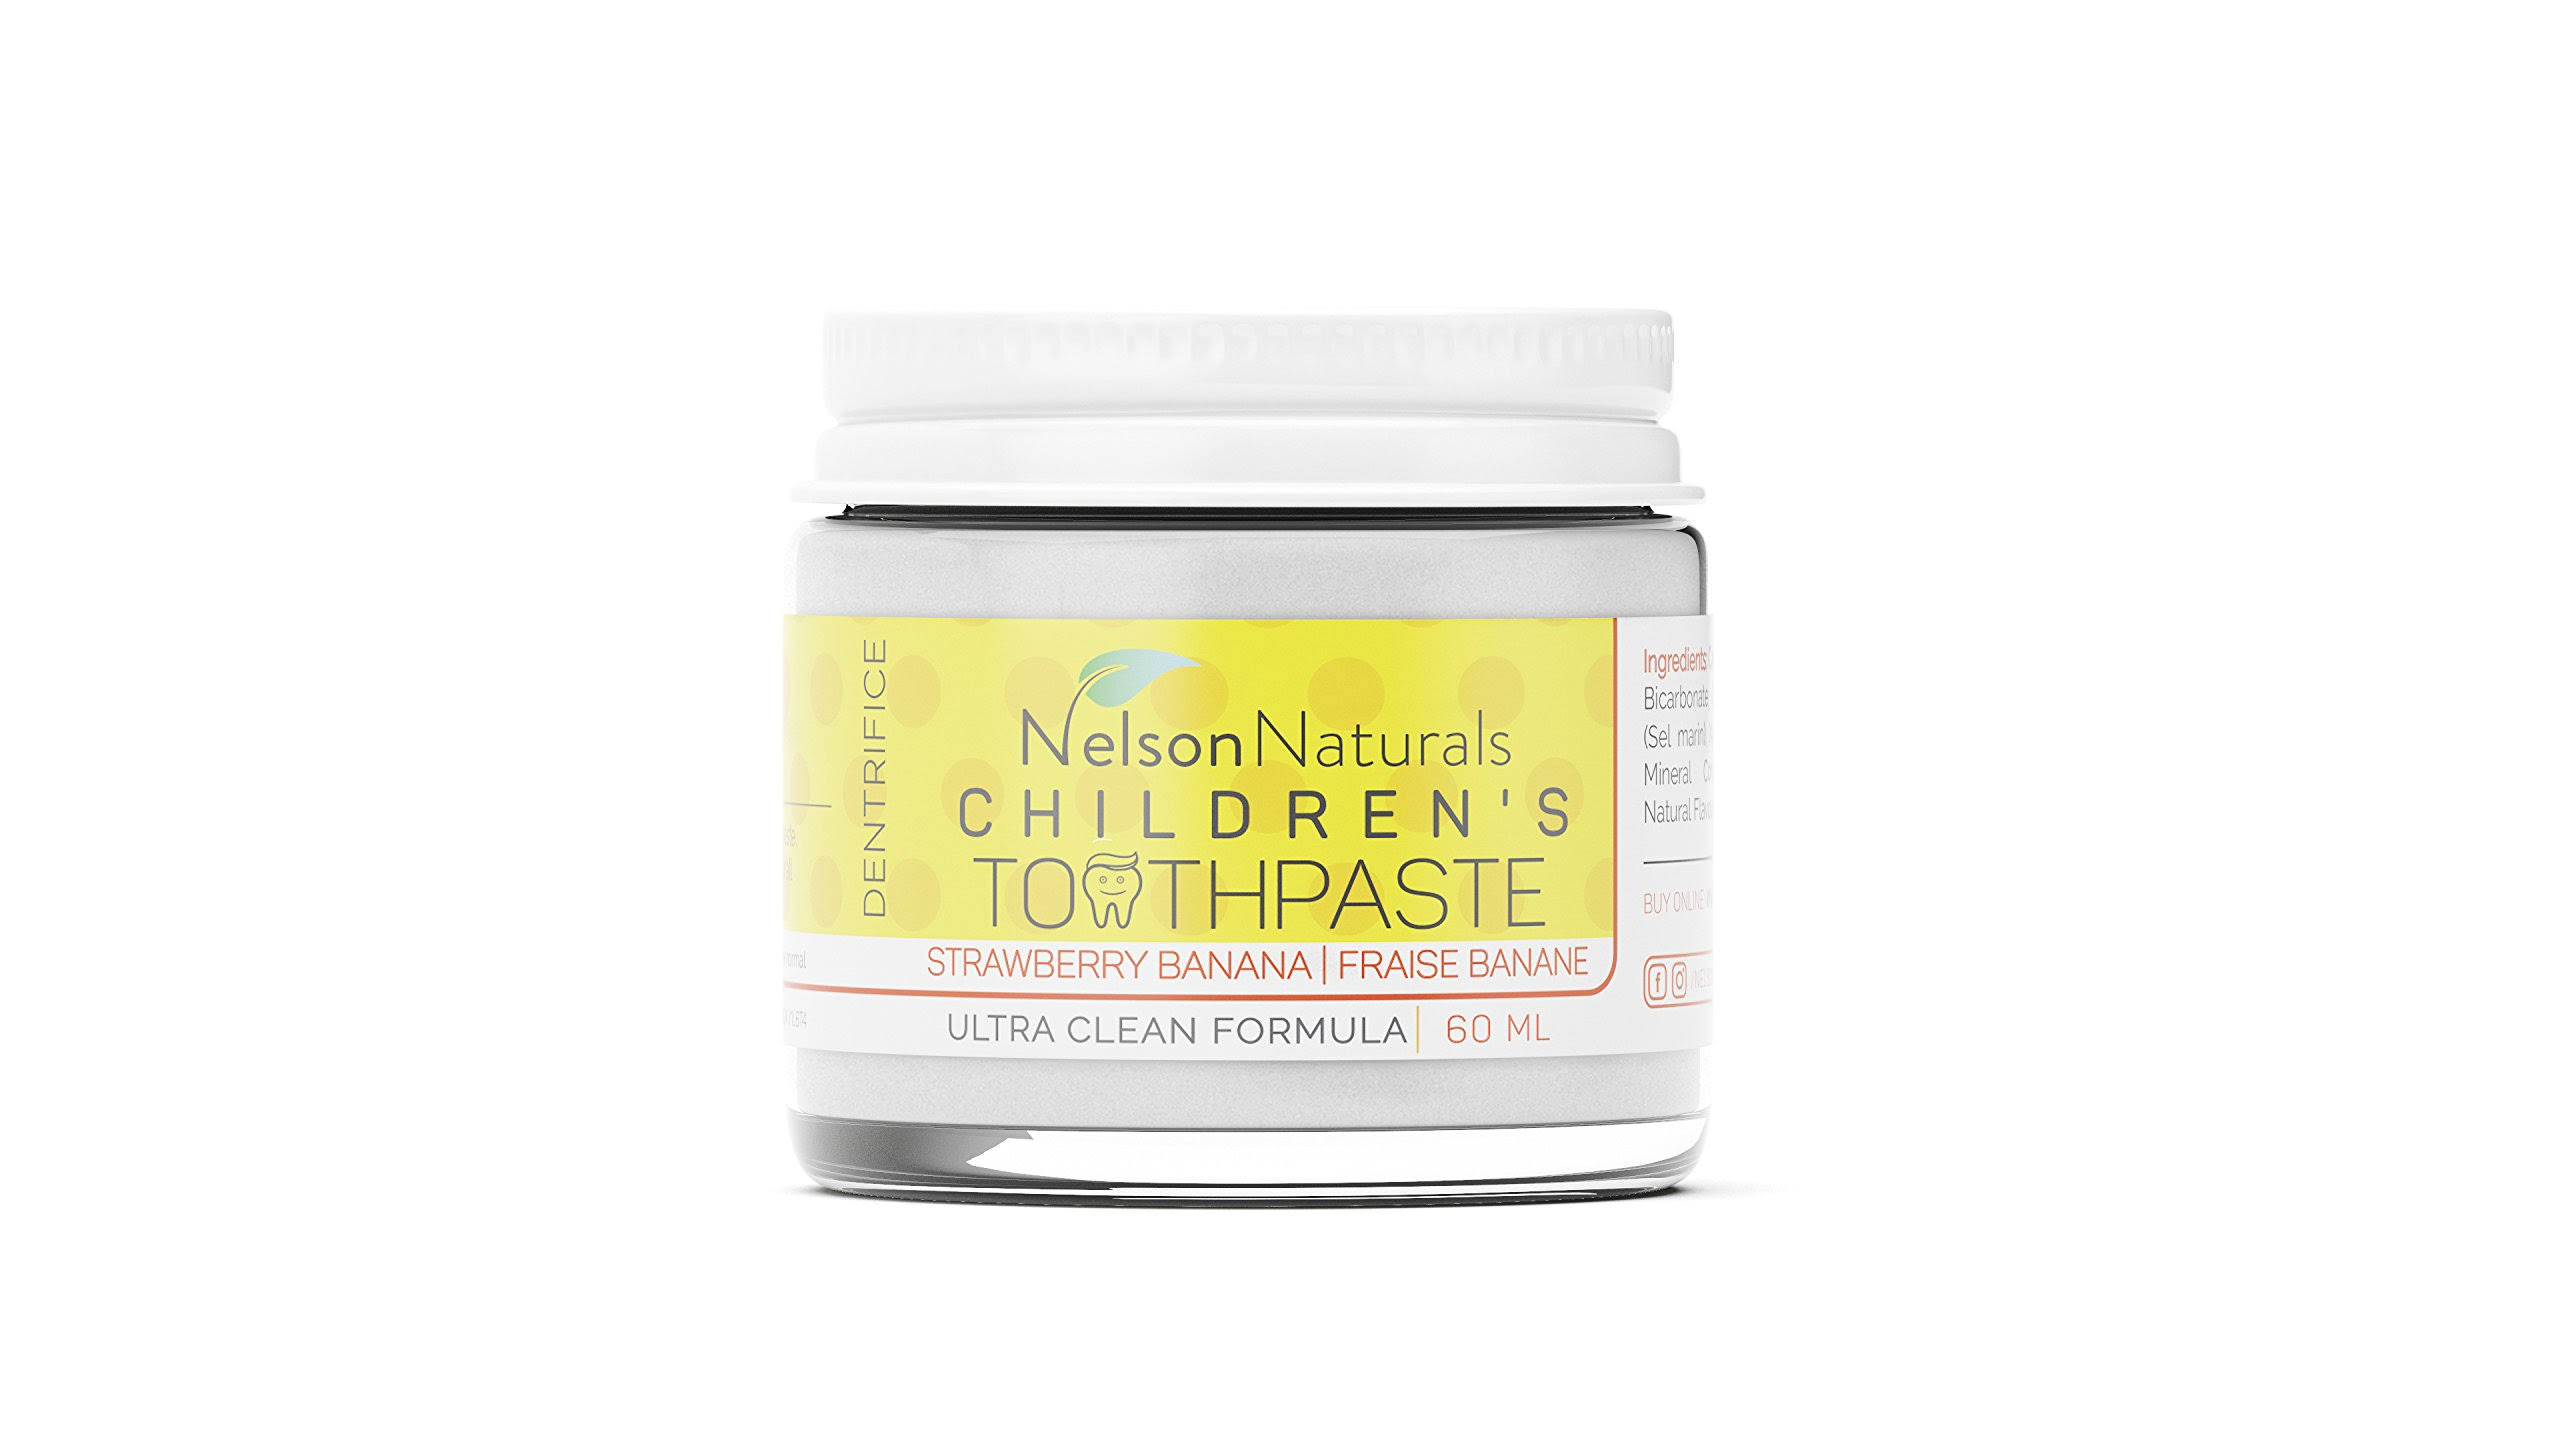 Nelson Naturals Children's Toothpaste Strawberry Banana